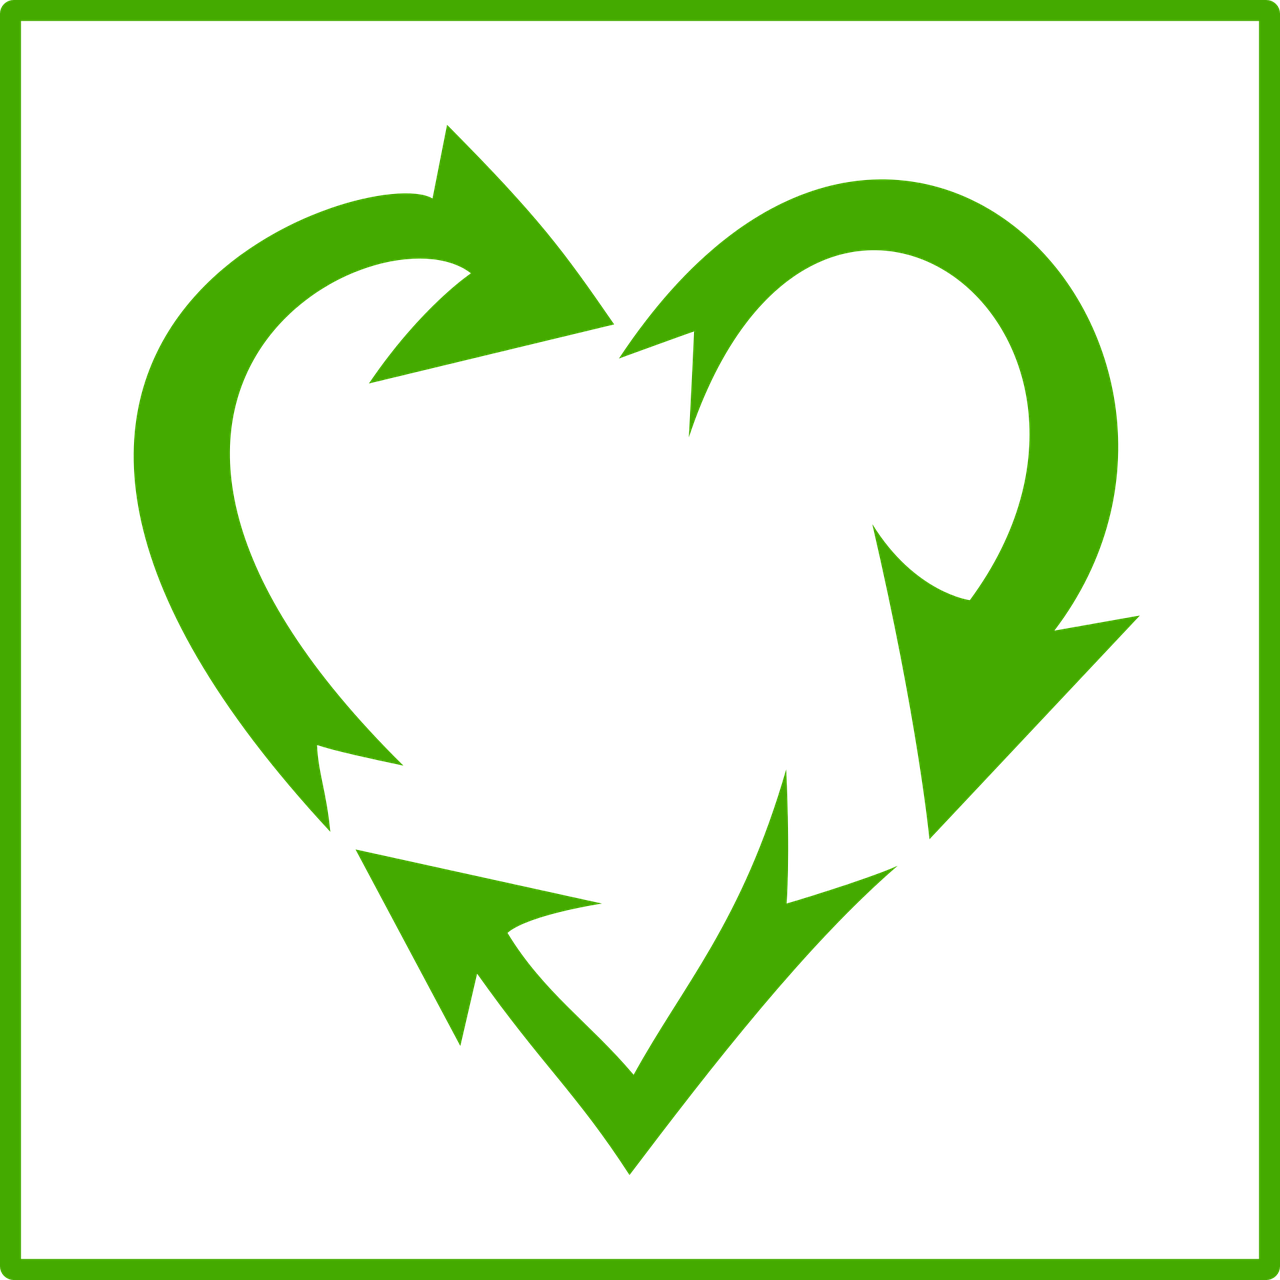 environment green heart free photo